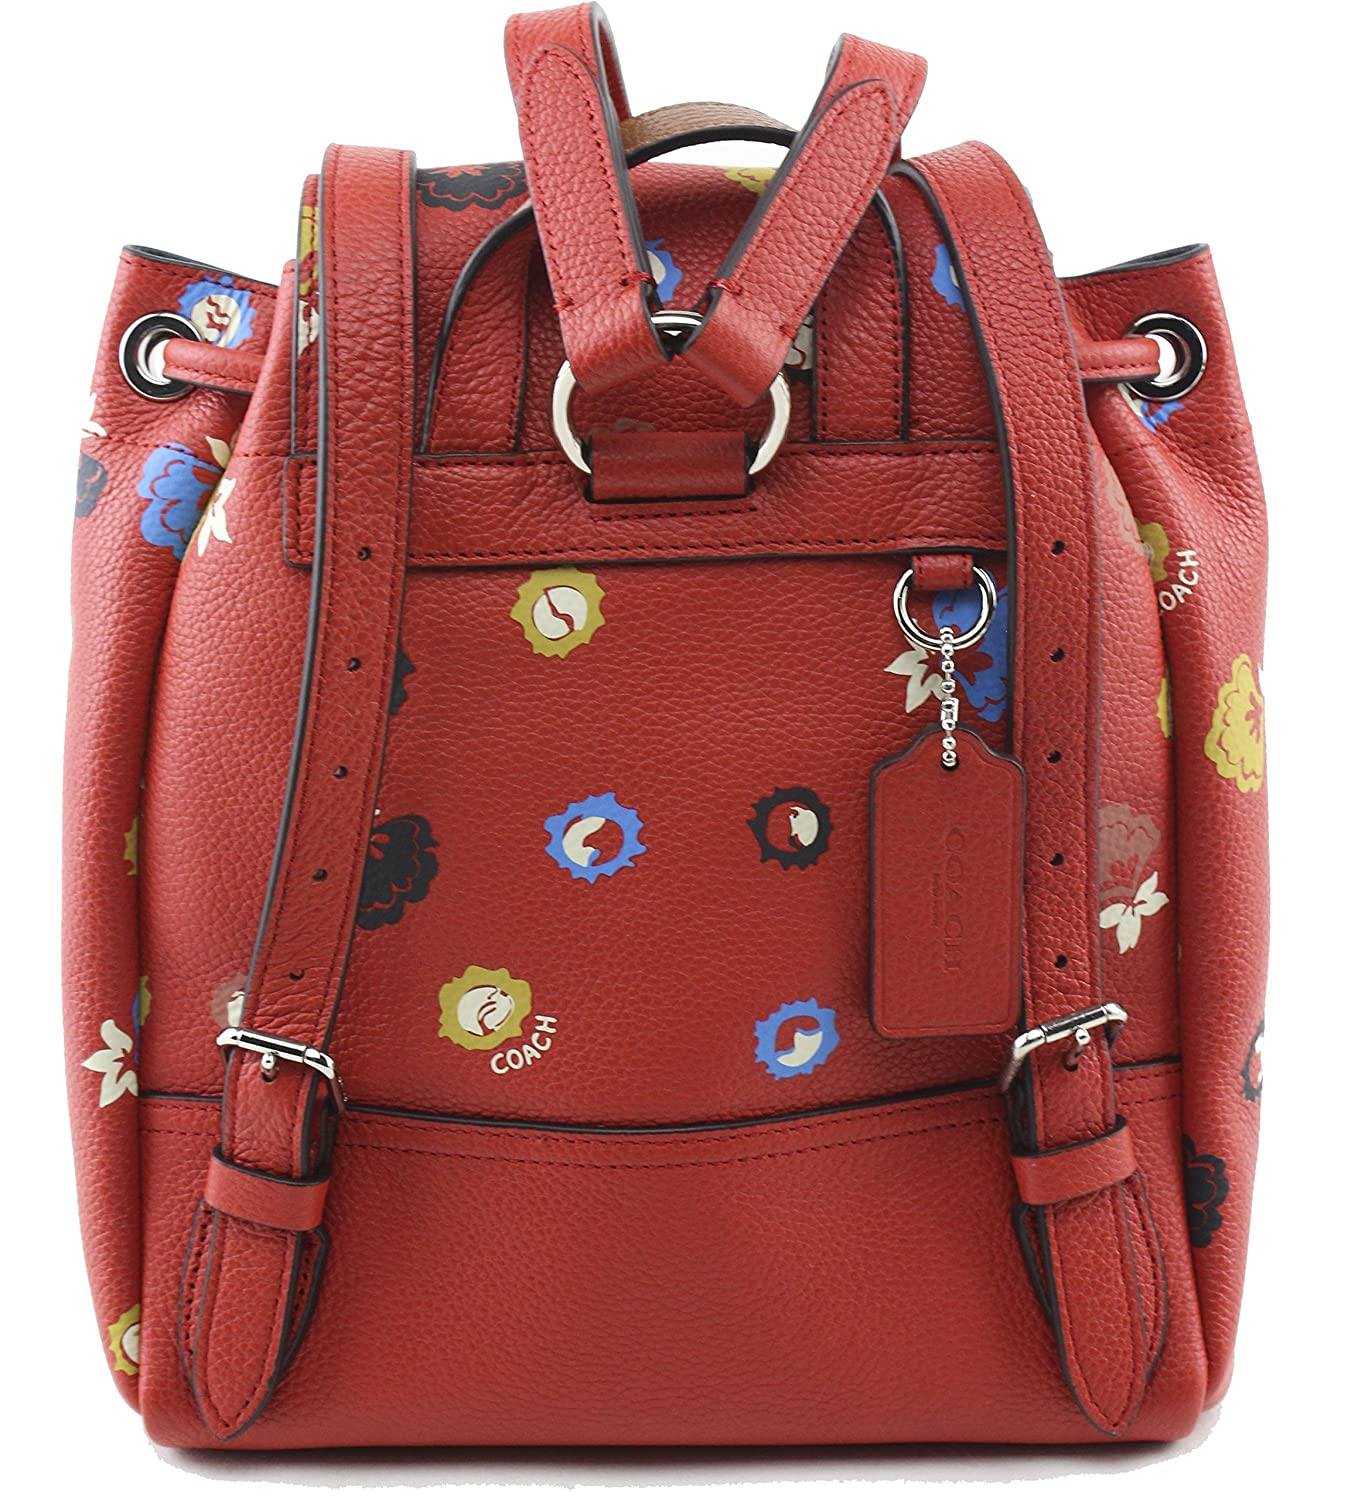 Coach Women s Orange Mini Turnlock Rucksack With Floral Print, Style F37738